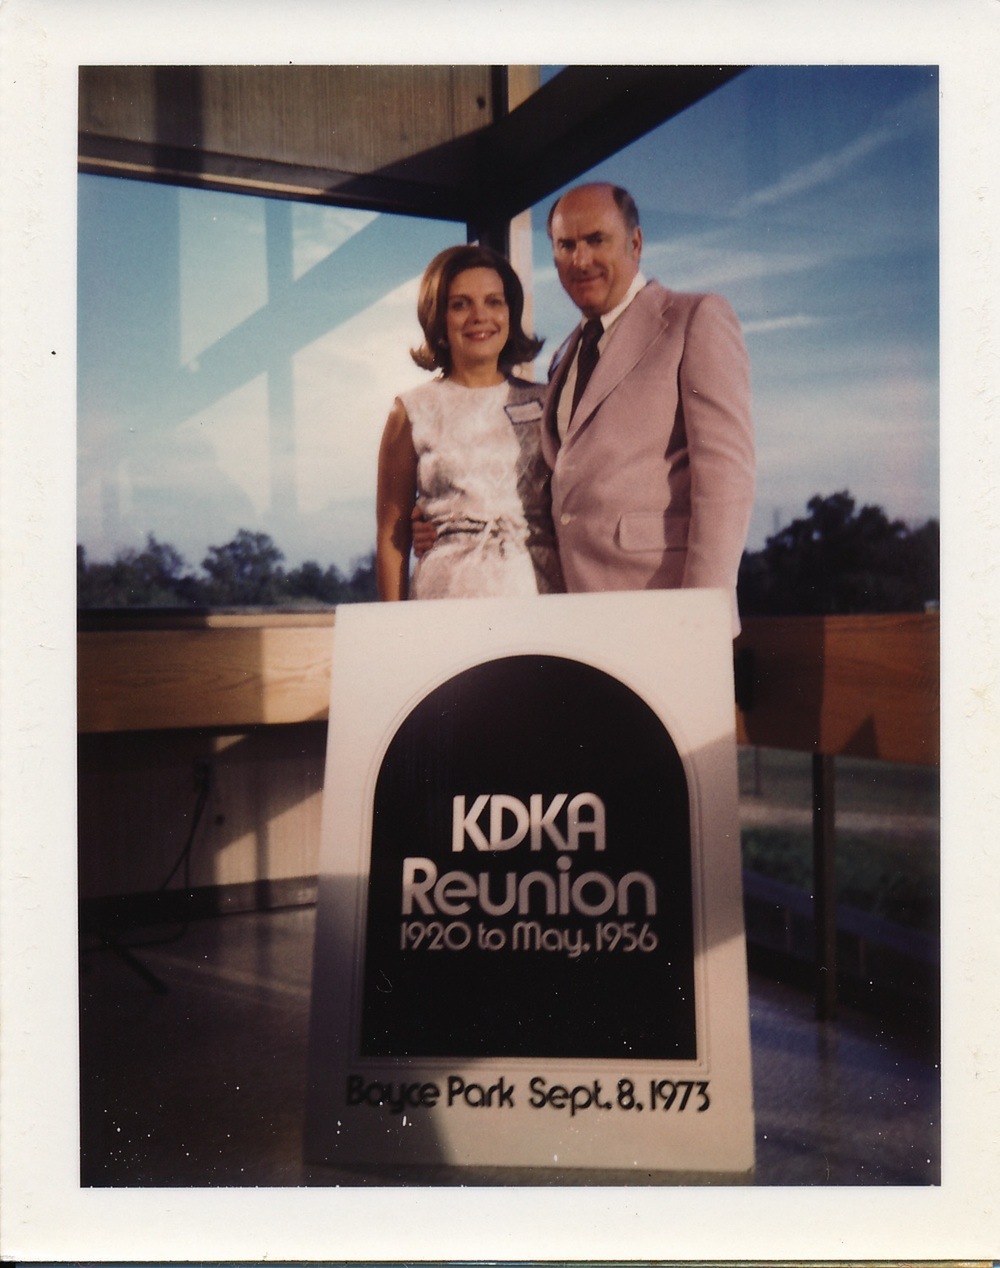 B & L at KDKA Reunion 9-8-'73+WEB.jpg